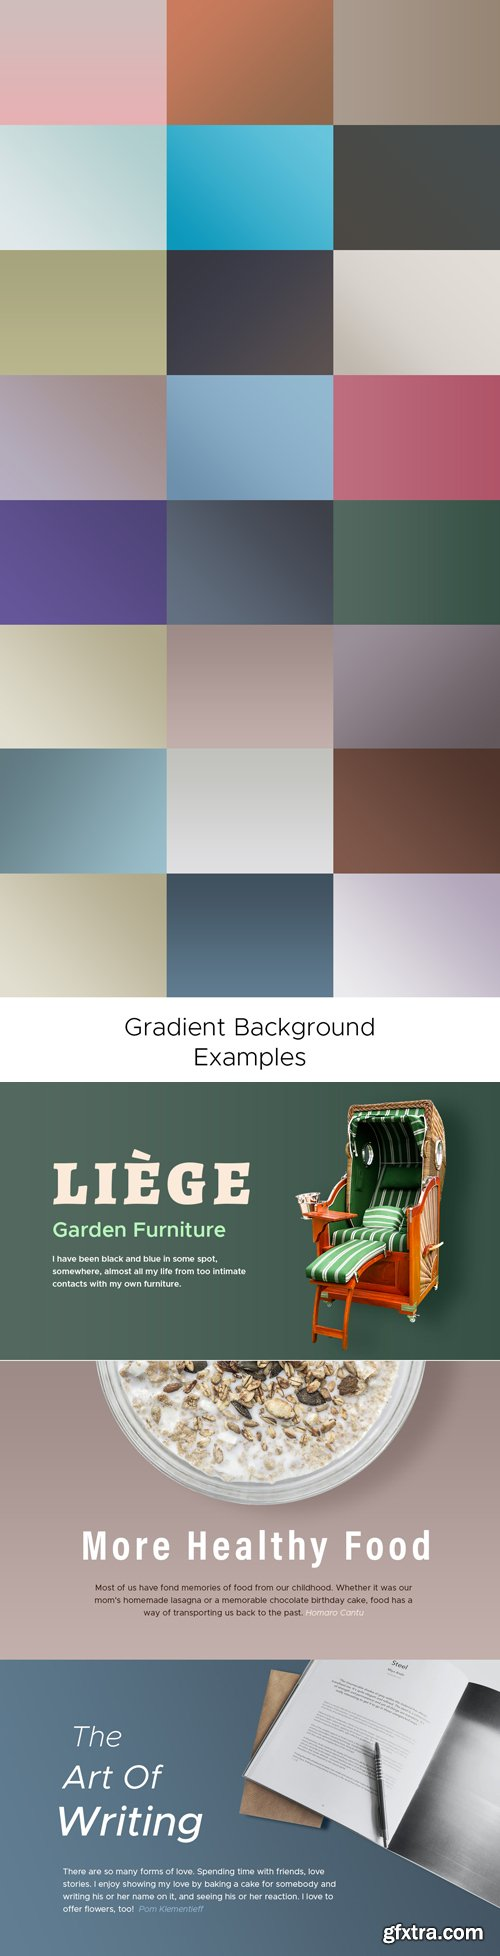 25 Professional Gradient Backgrounds for Photoshop GRD